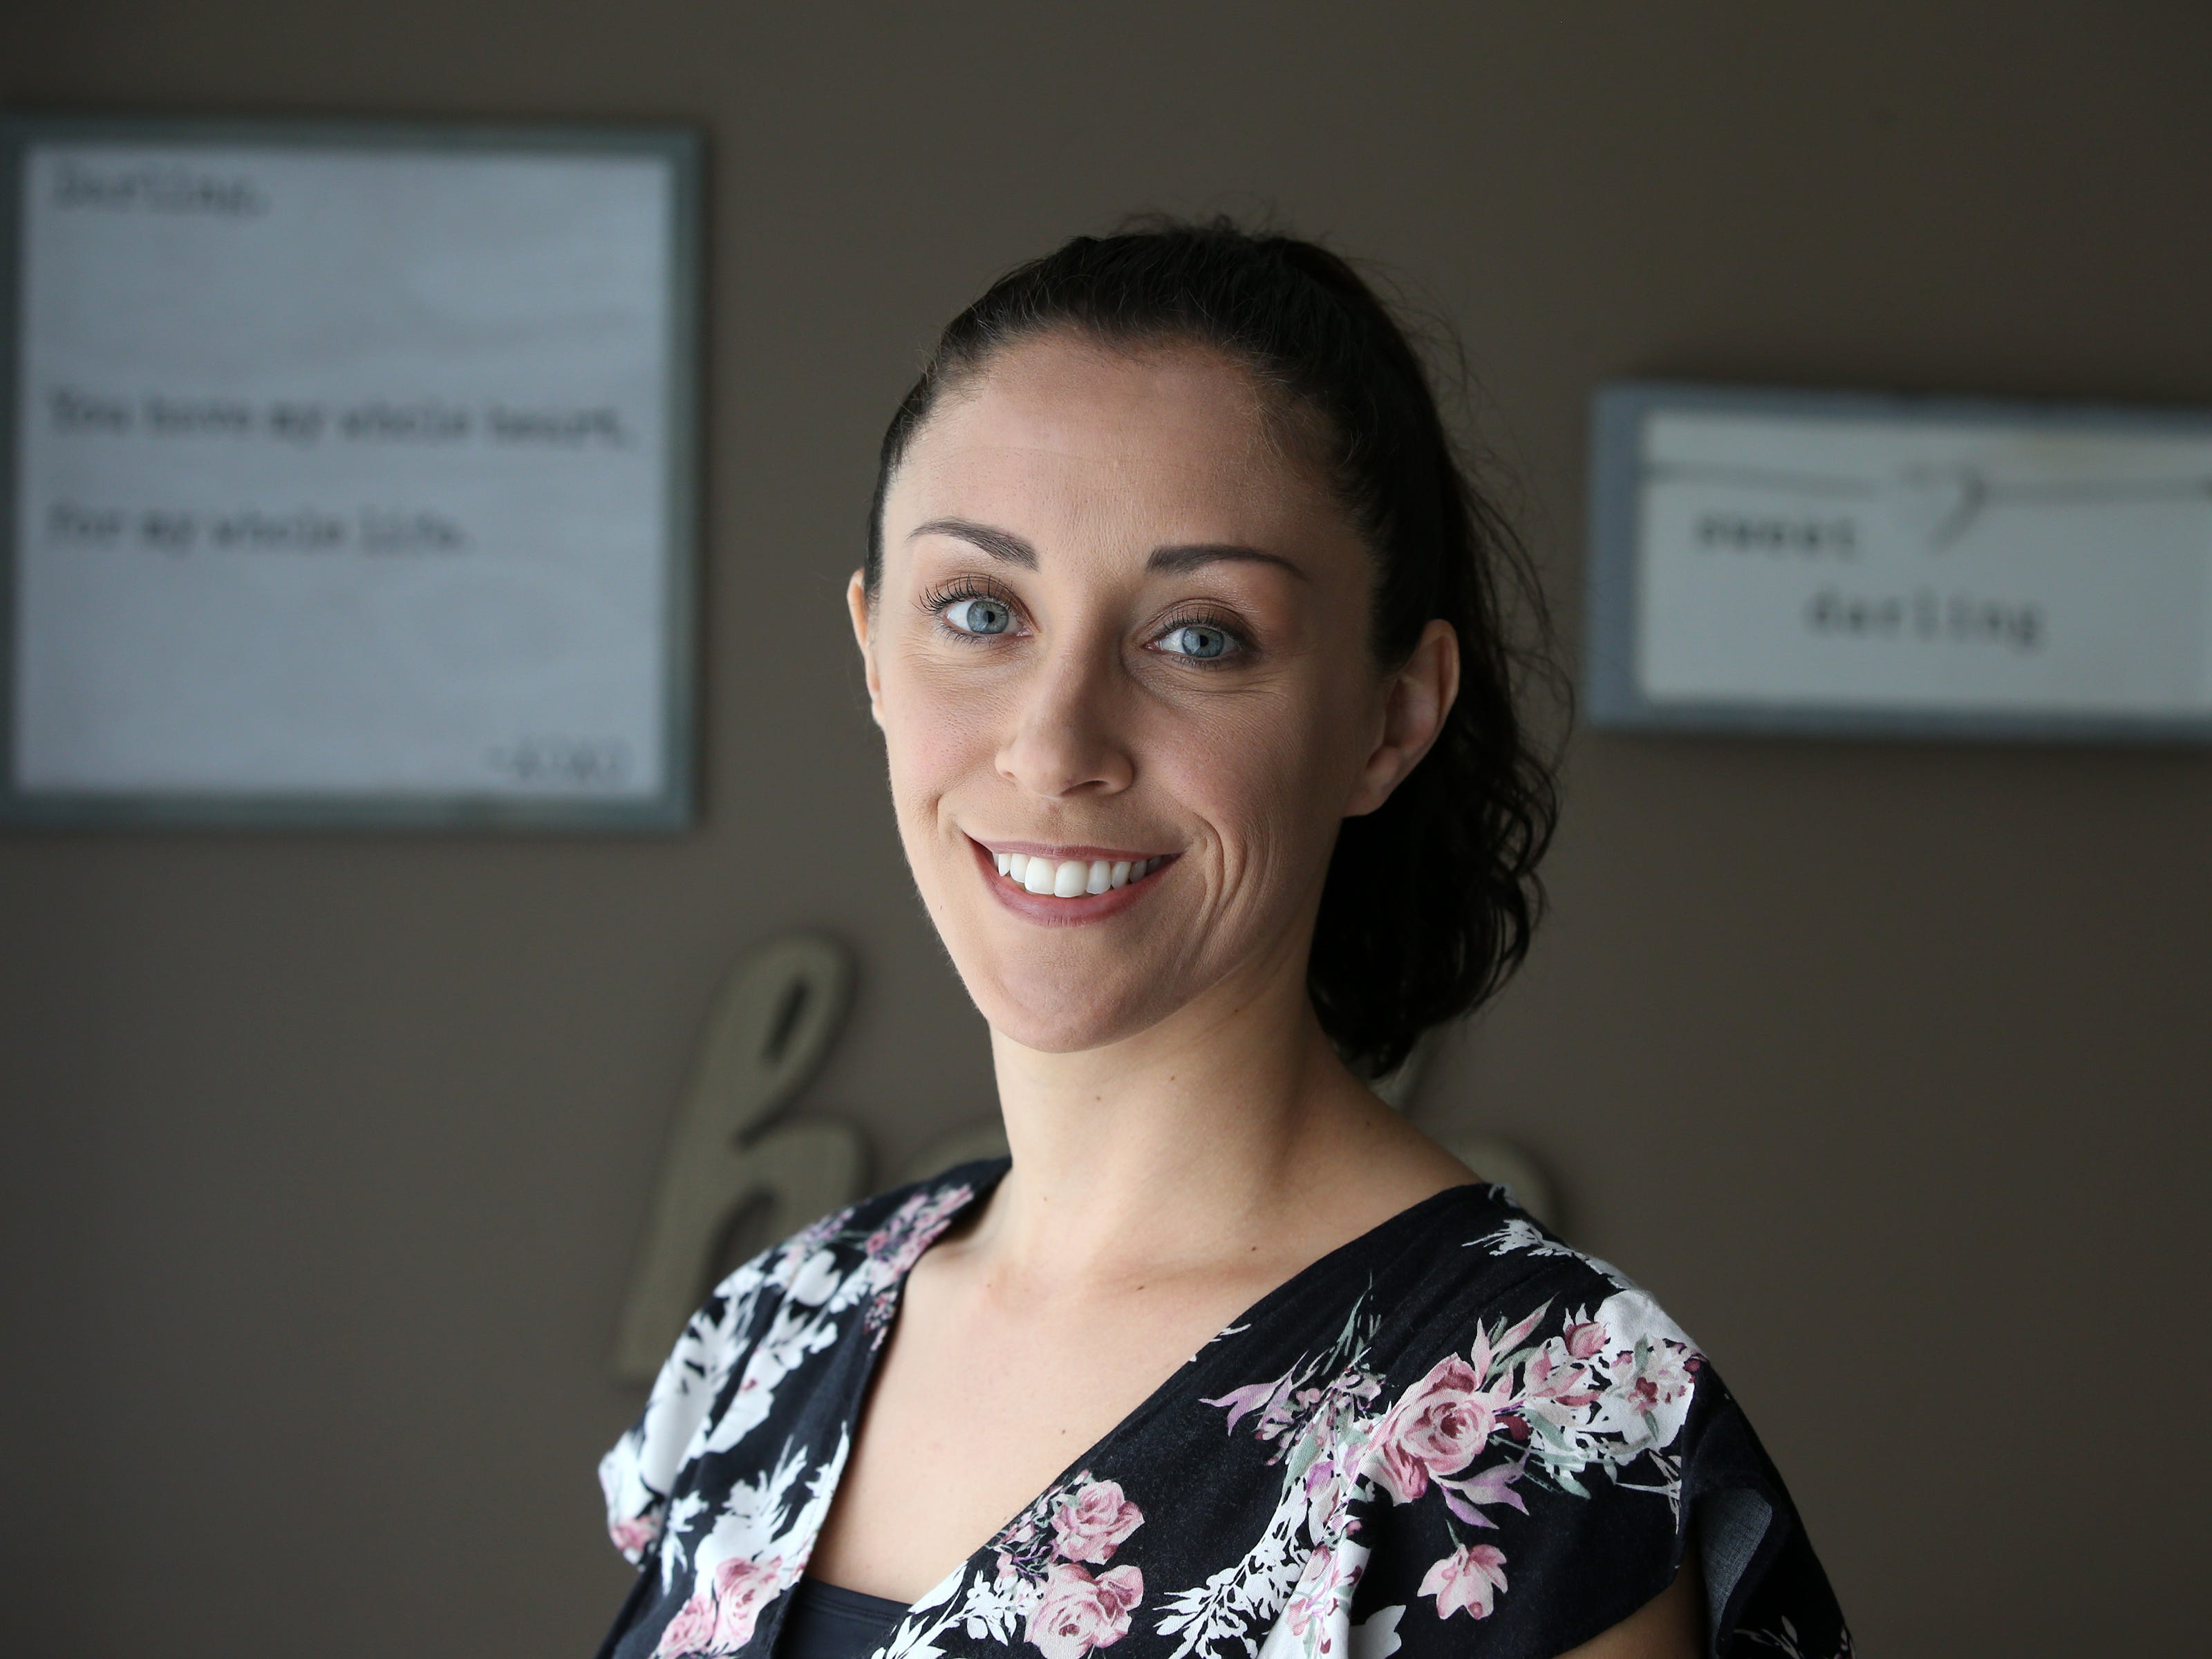 Mandy Figueroa, owner of Miraculous Moments, a year-old firm in Brick that specializes in pregnancy and provides 2D/3D/4D ultrasounds, holistic services, and education, talks about her business in Brick, NJ Friday, May 3, 2019.